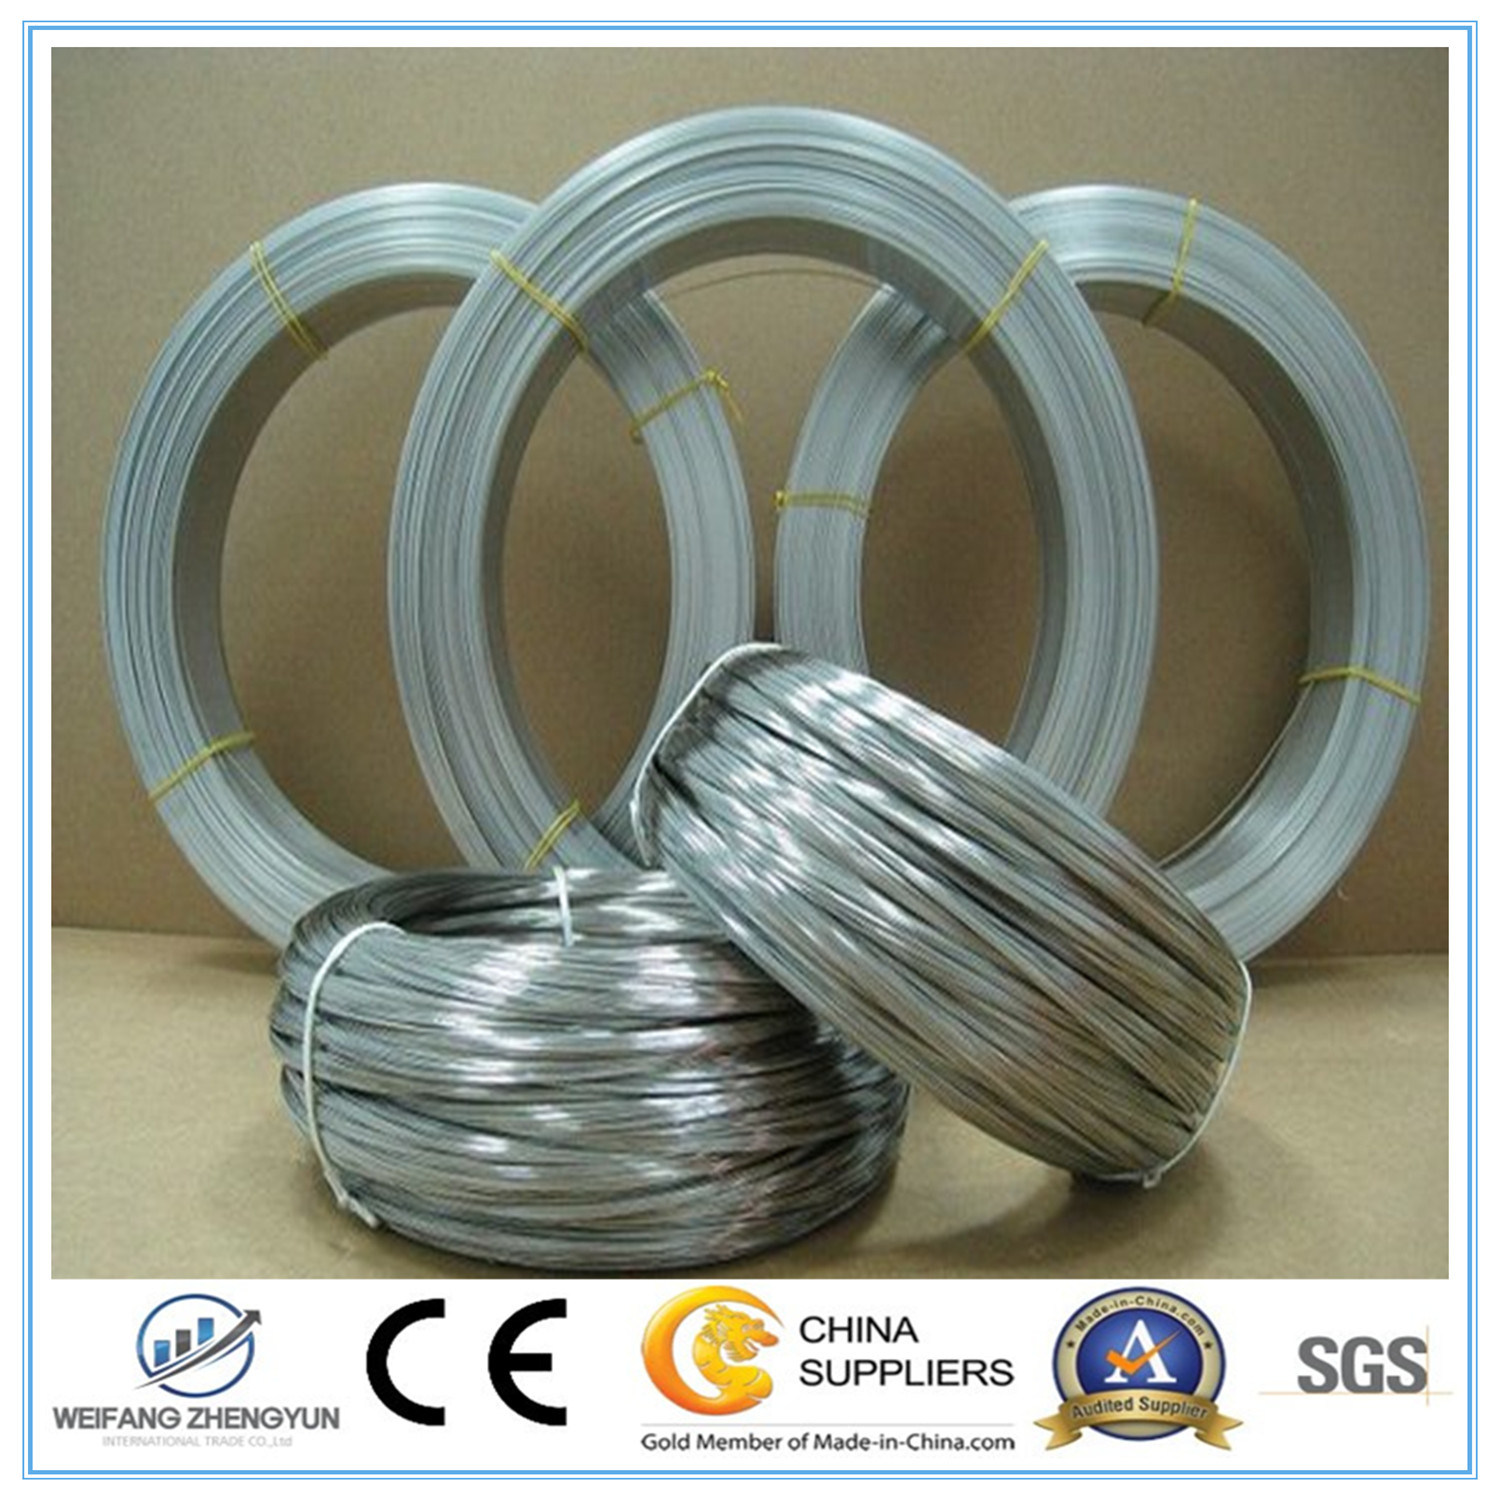 Best Selling Products Galvanizad Wire/Galvanized Steel Wire